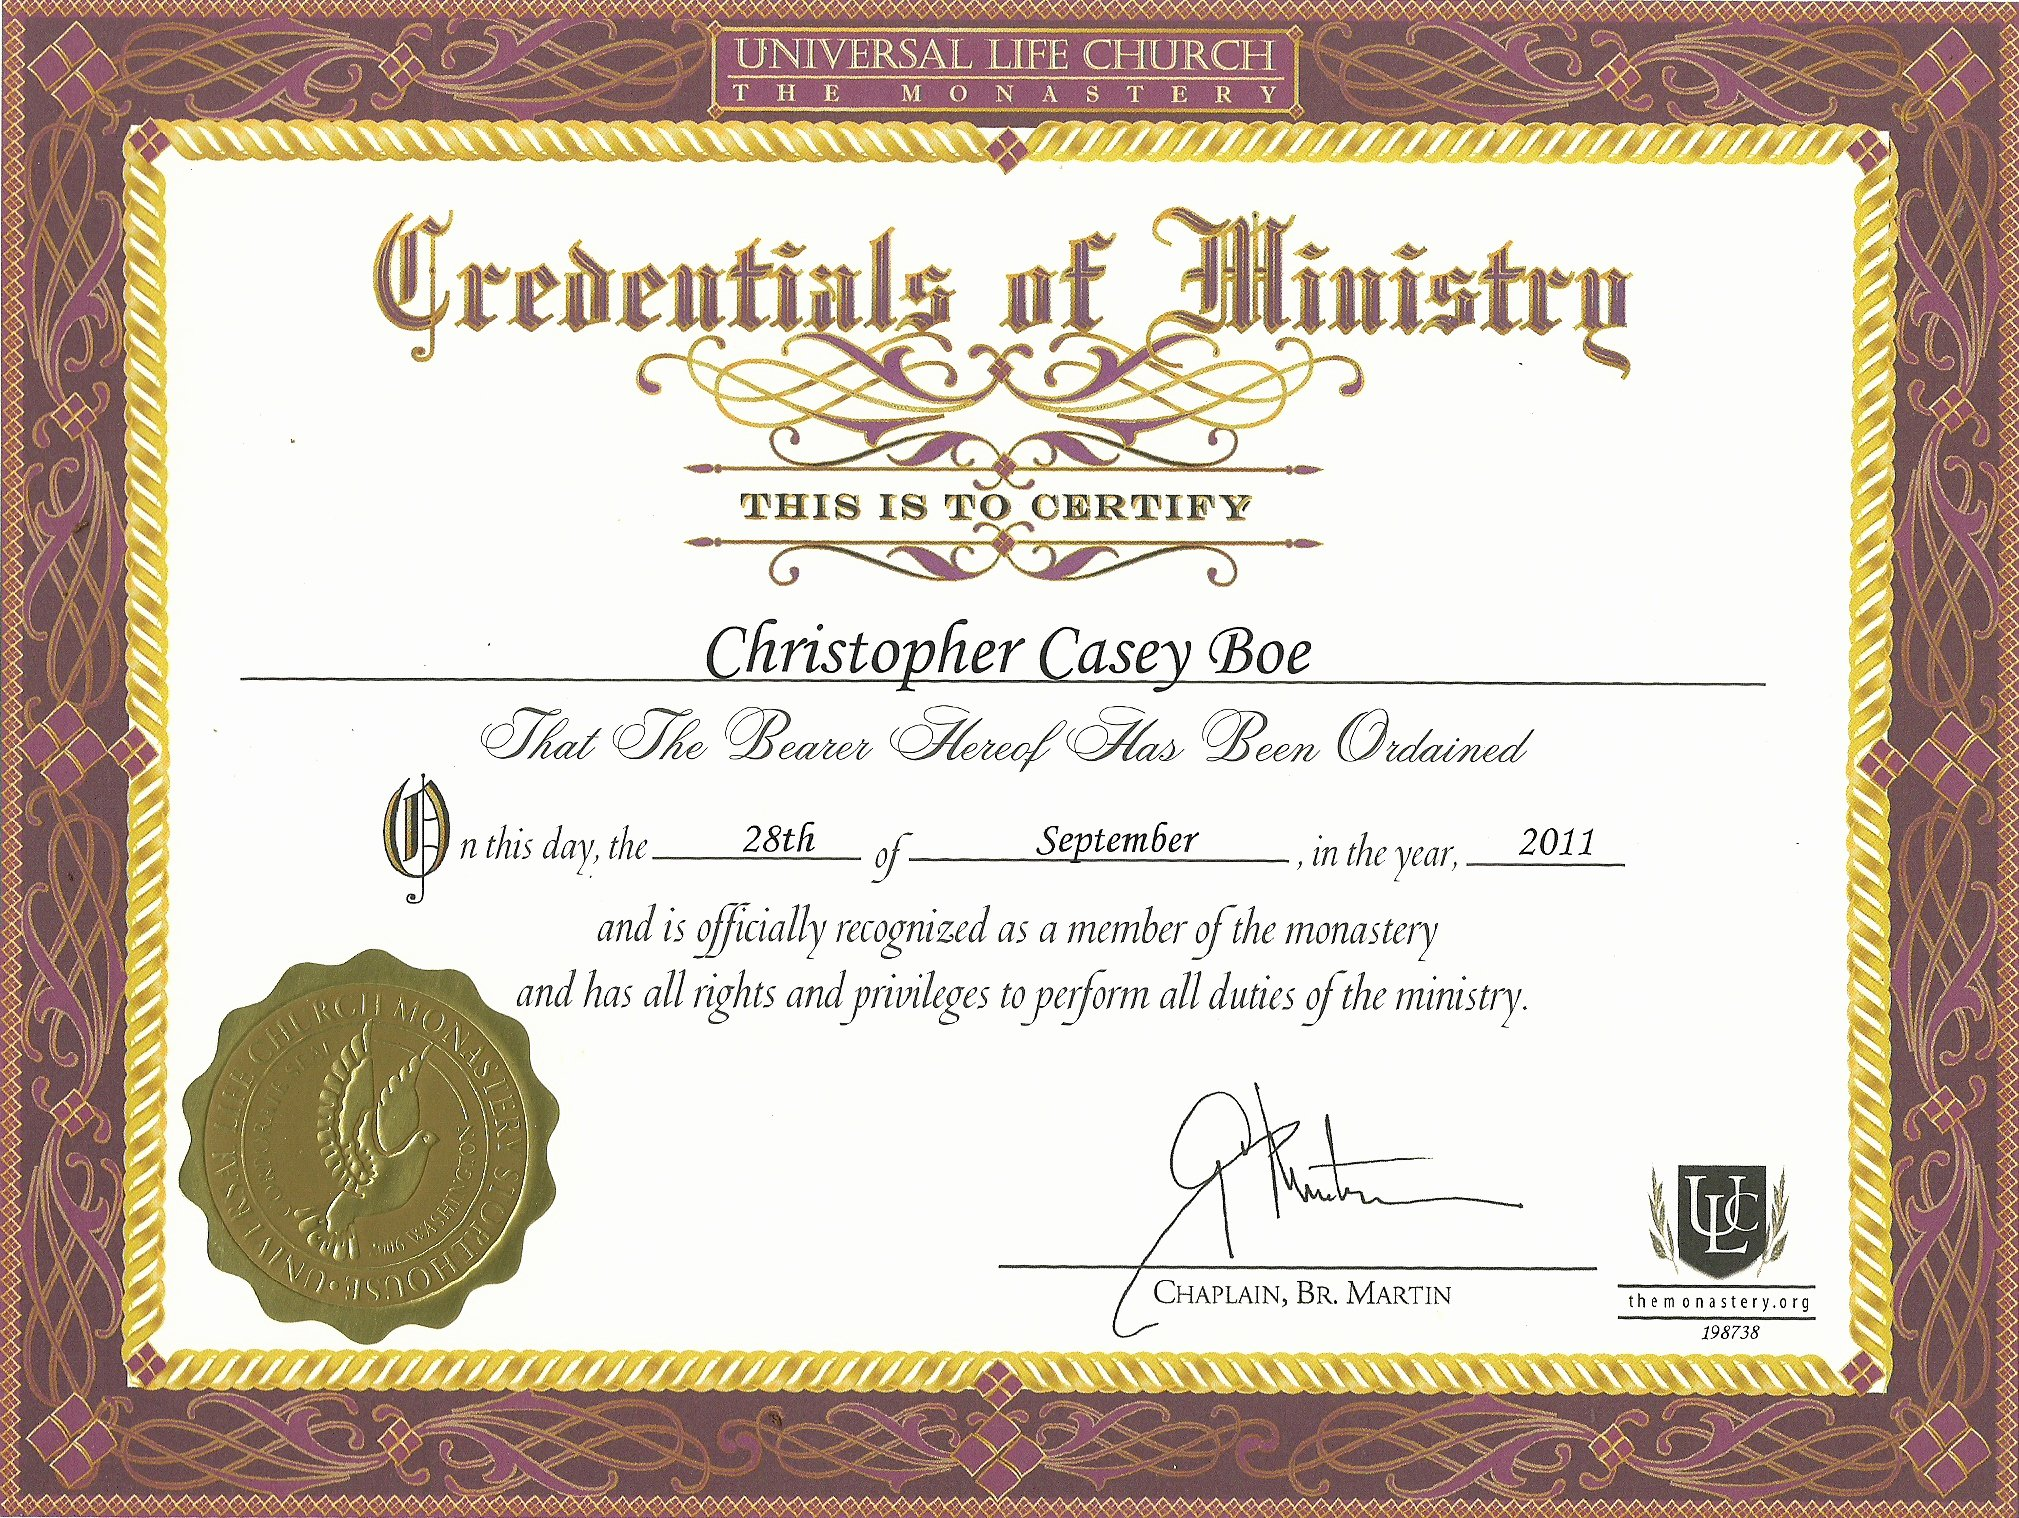 Minister License Certificate Template Beautiful Credentials Of Ministry